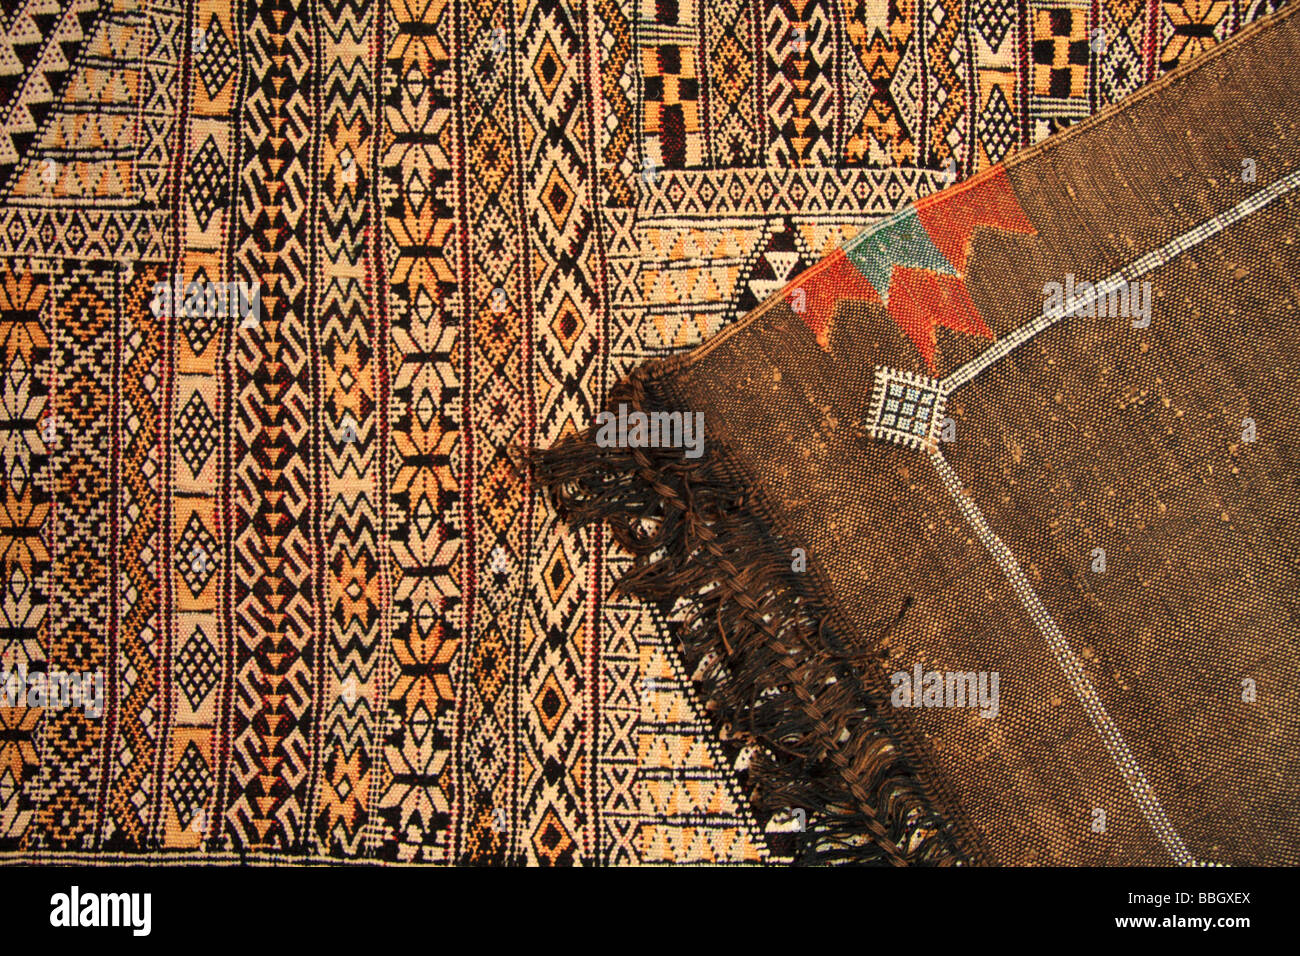 Han Knotted Berber Rugs And Carpets For Sale In Rissani, Morocco   Close Up